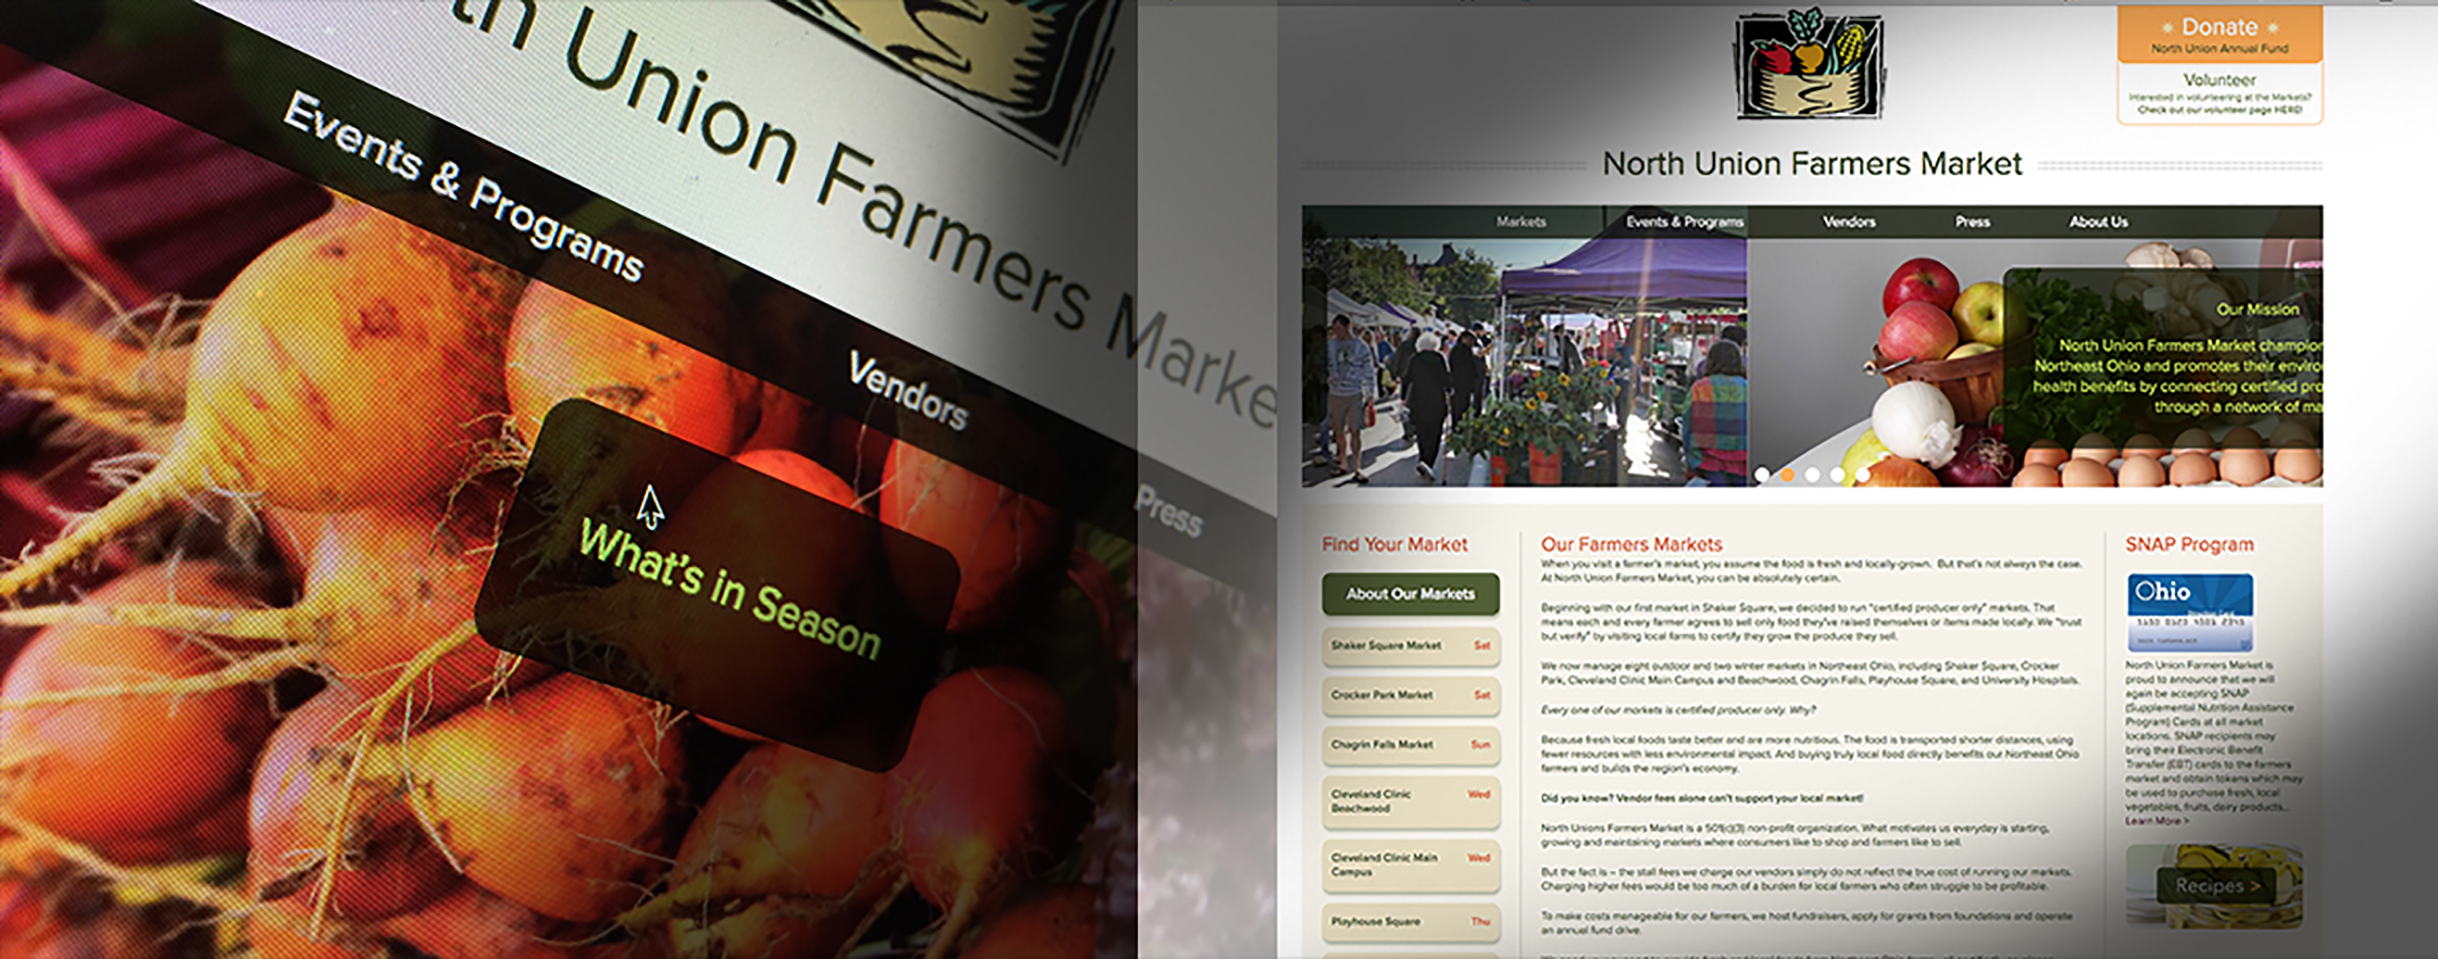 North Union Farmers Market